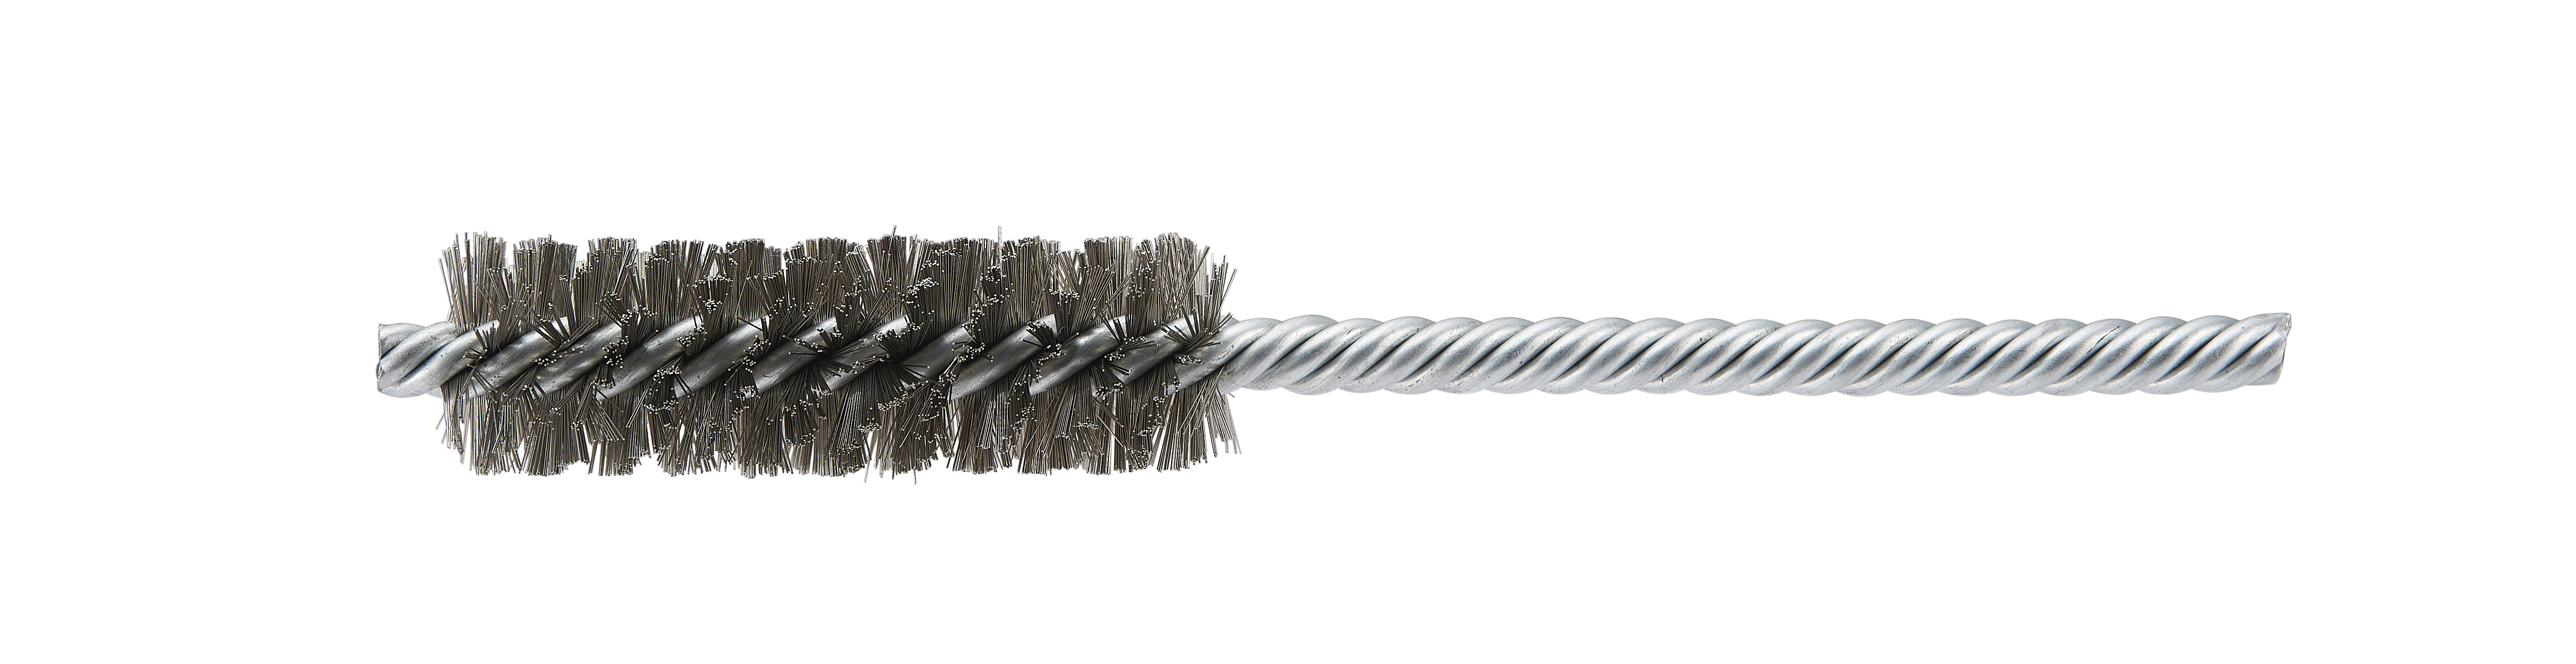 05216 Power Tube Brush